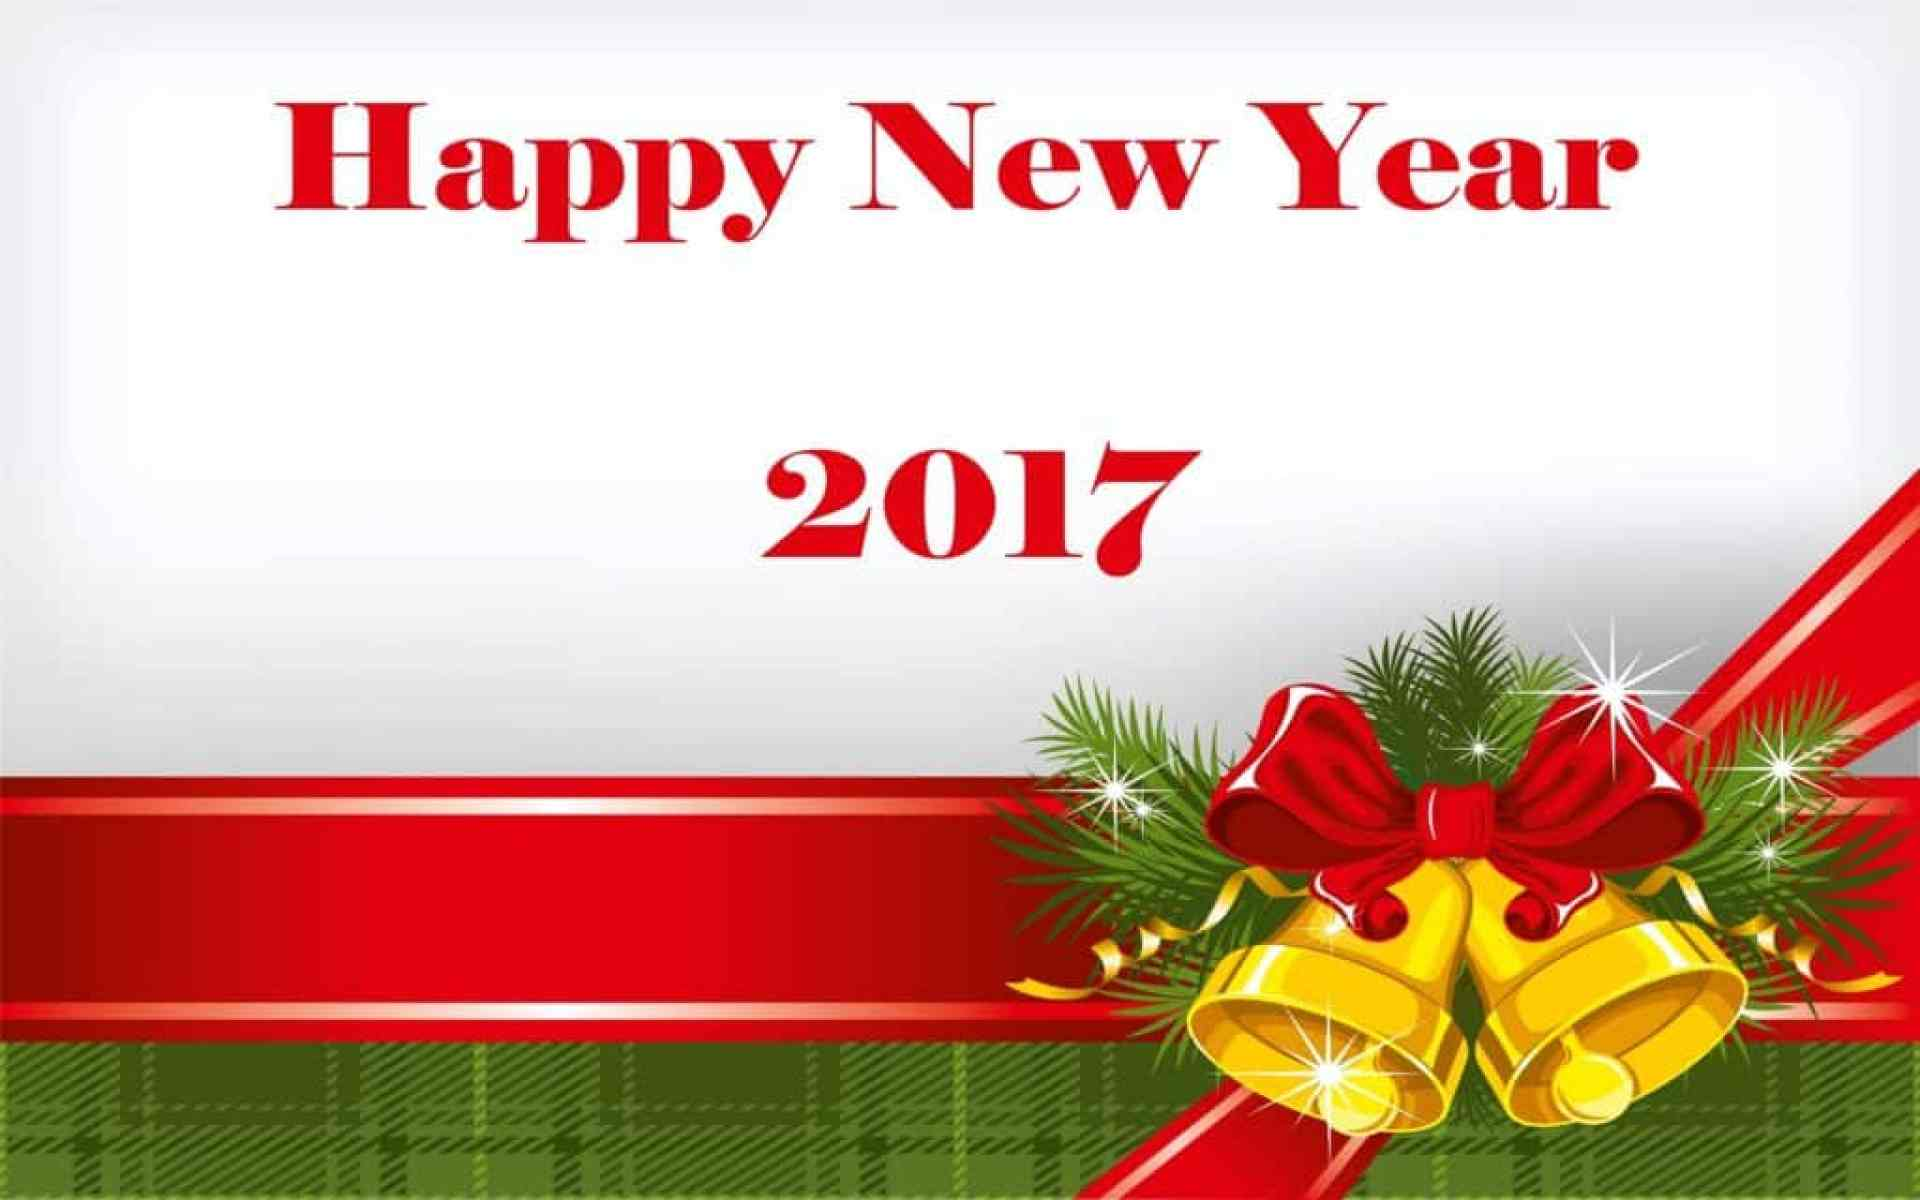 Happy New Year 2017 with decoration bells